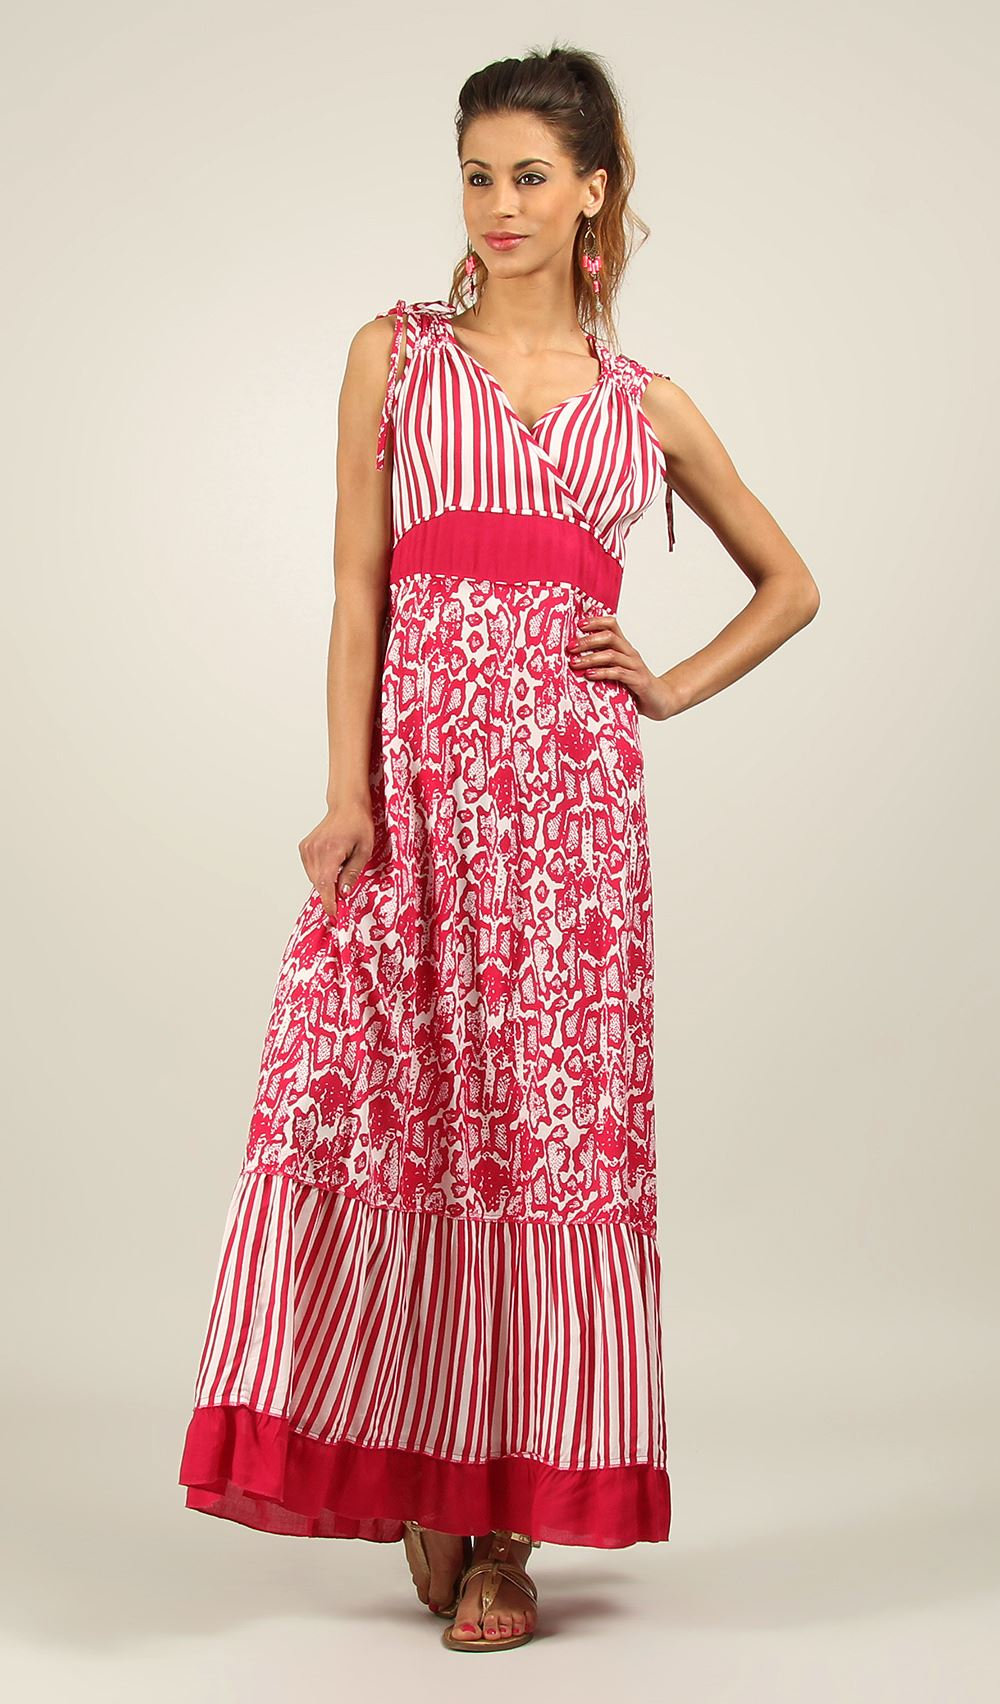 New-Ladies-Kushi-Boho-Gypsy-Summer-Maxi-Beach-Dress-Size-10-22